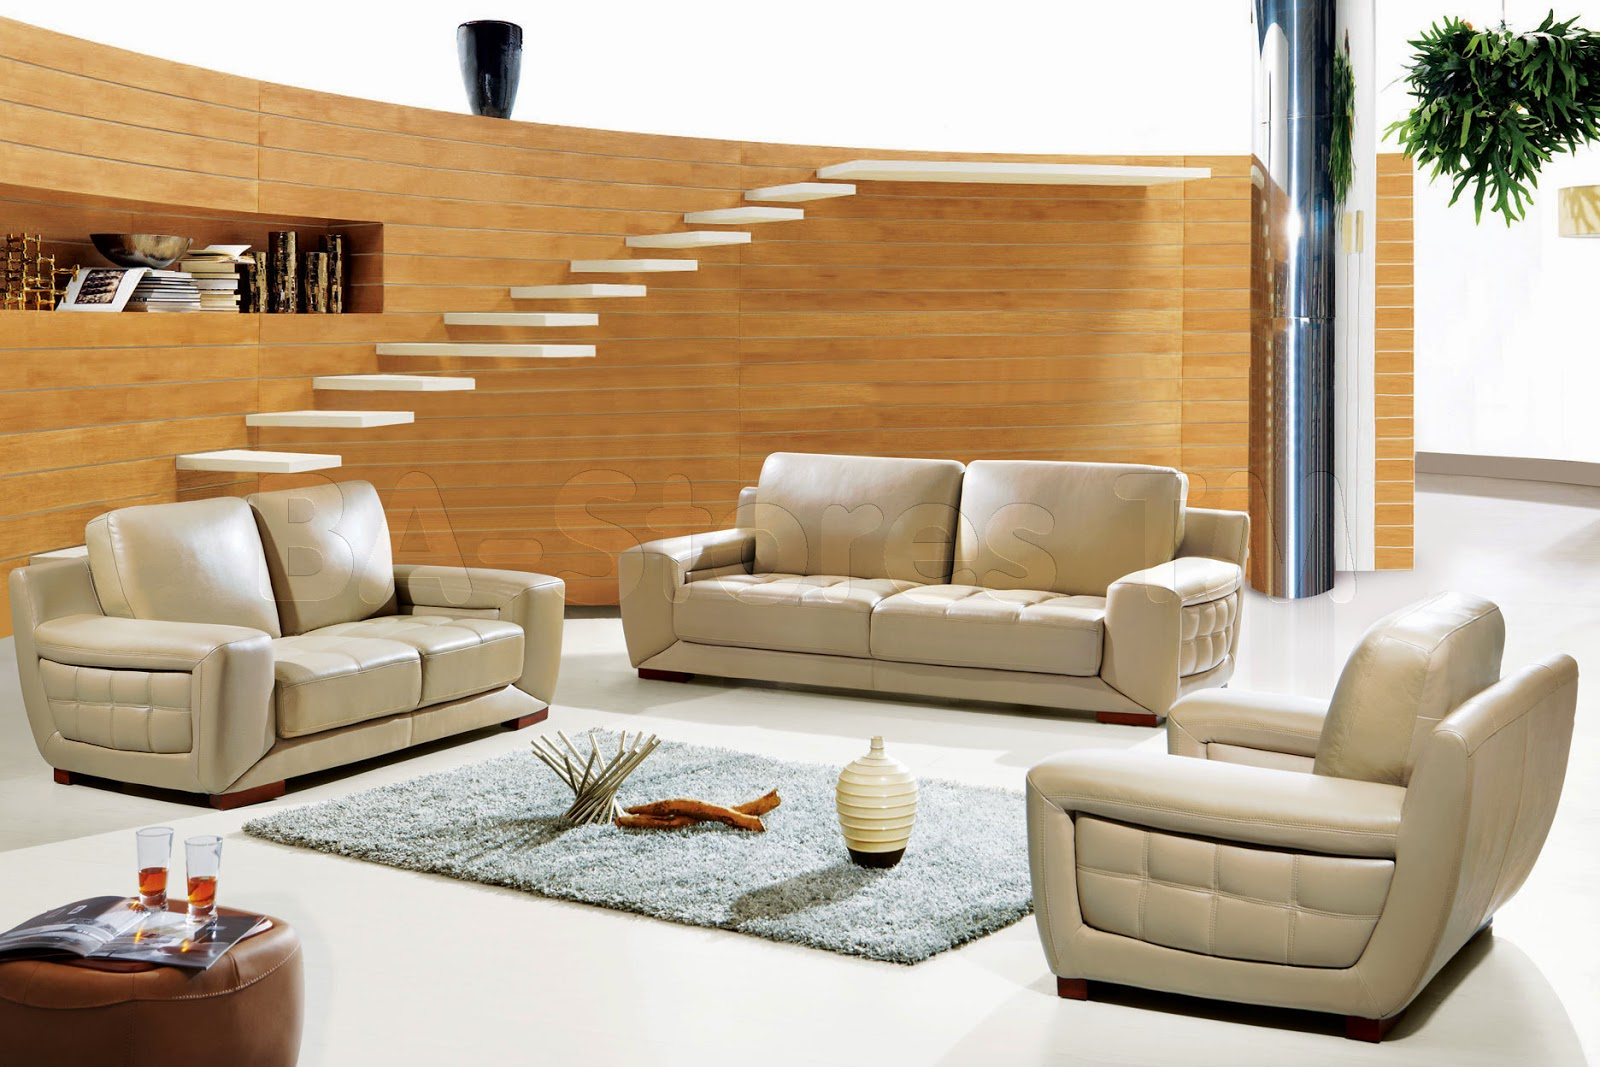 ARTICLE Relaxing Living Room Furniture Design Ideas READ NOW ...